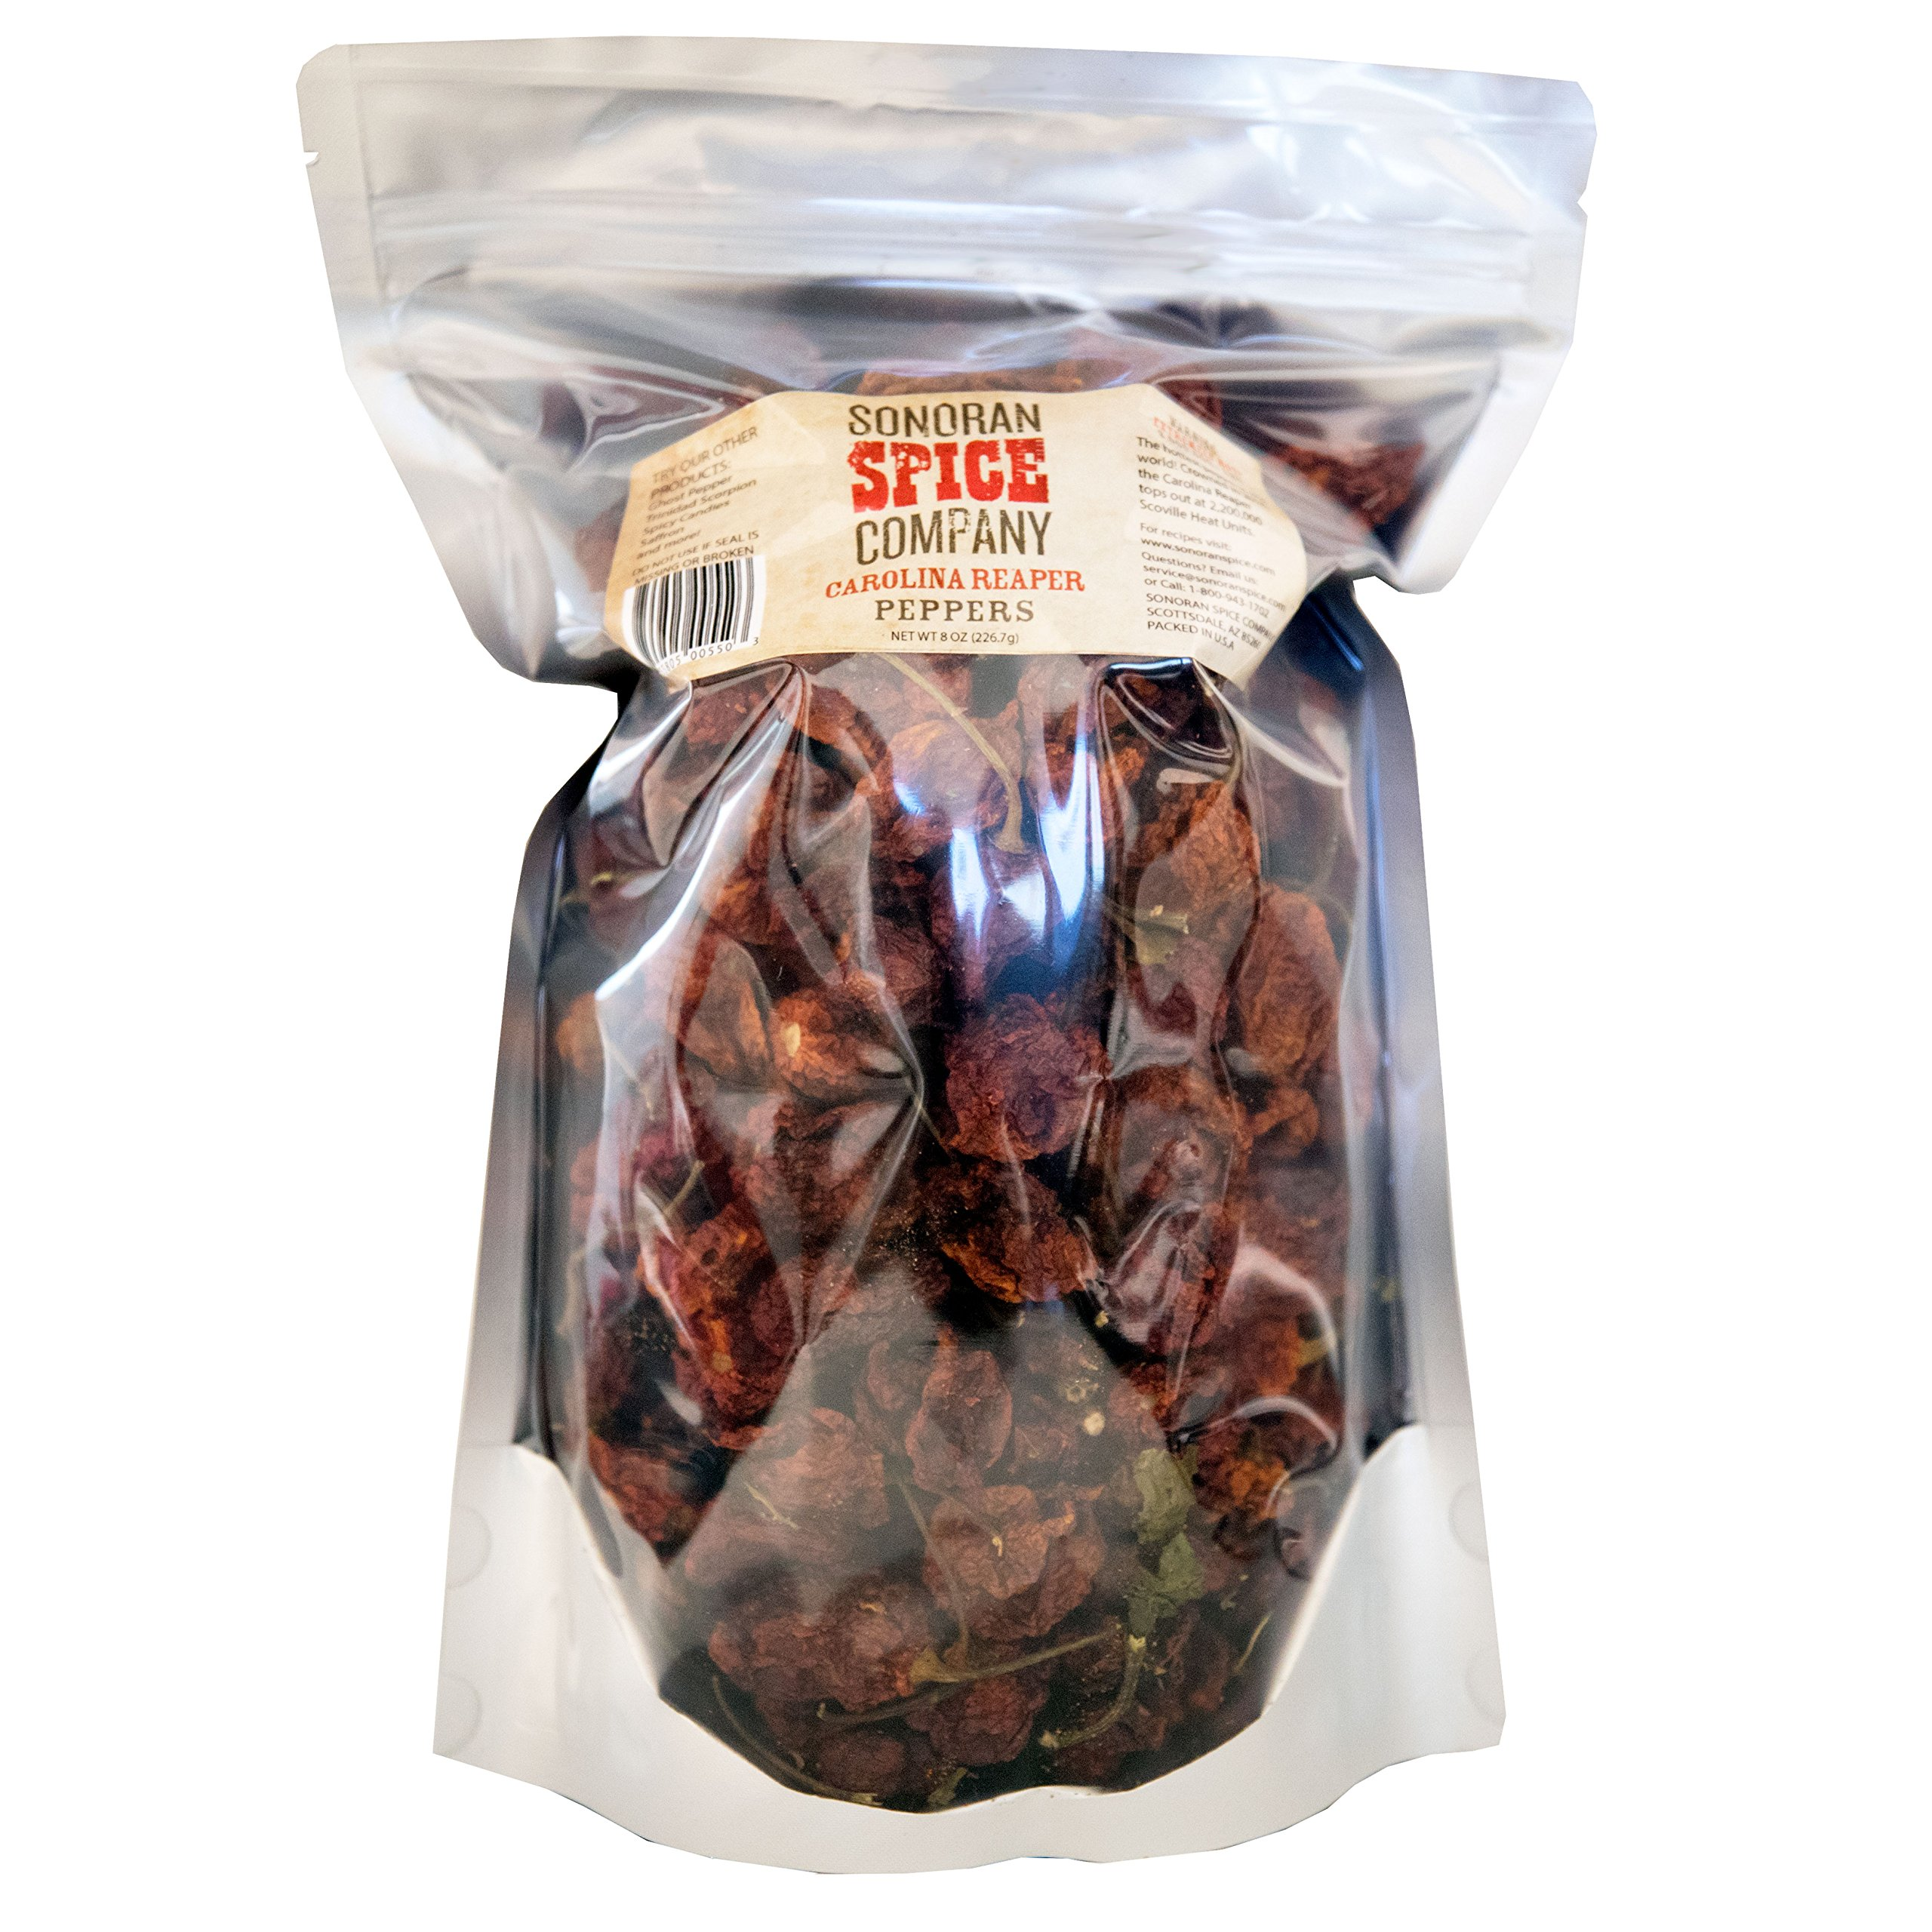 Carolina Reaper Peppers - Oven Dried (8 Oz)